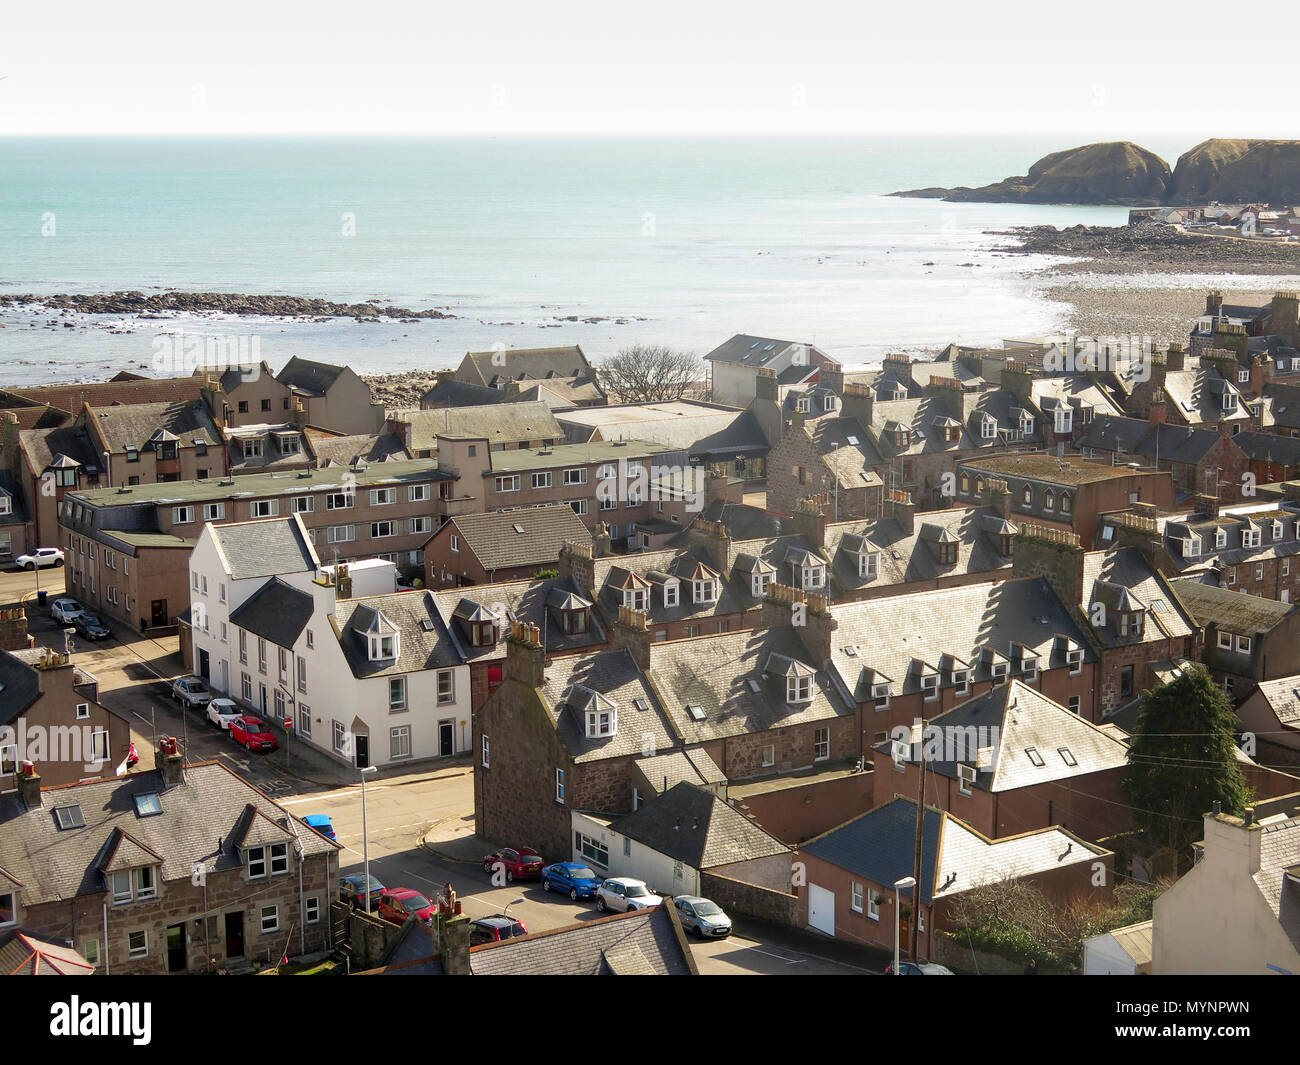 Stonehaven Scotland roofscape - Stock Image